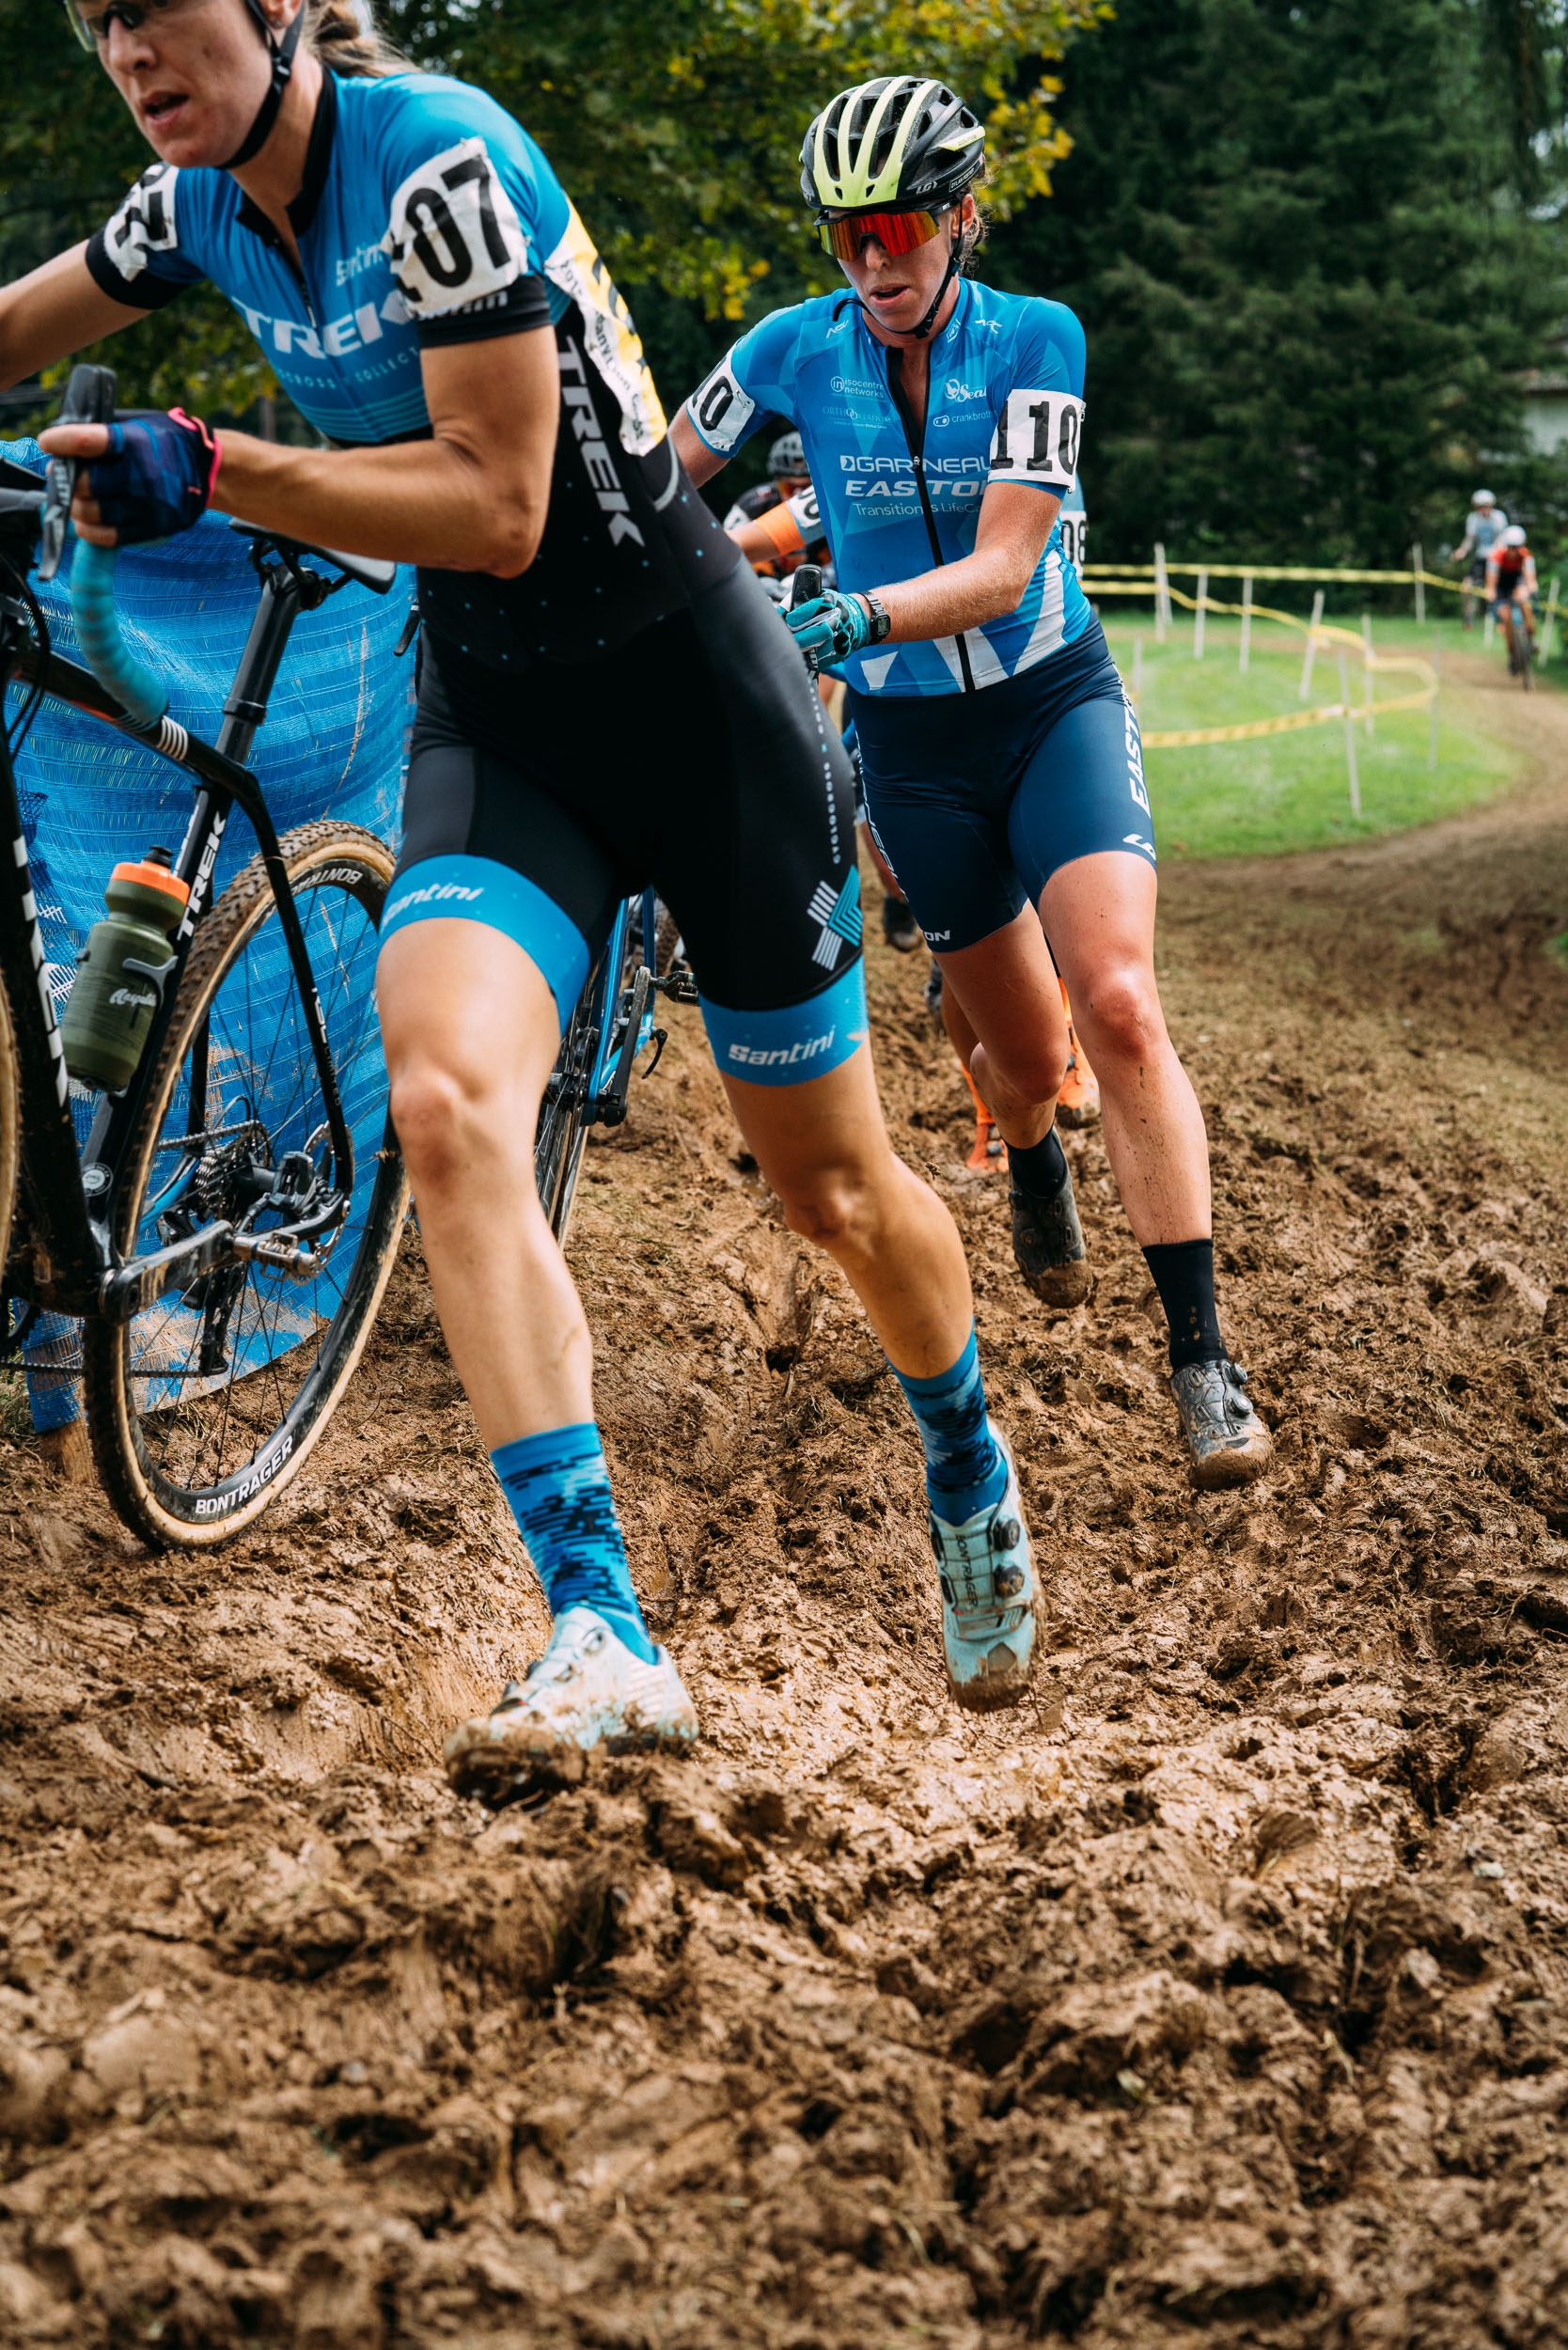 photo-rhetoric-to-be-determined-nittany-cyclocross-1124.jpg